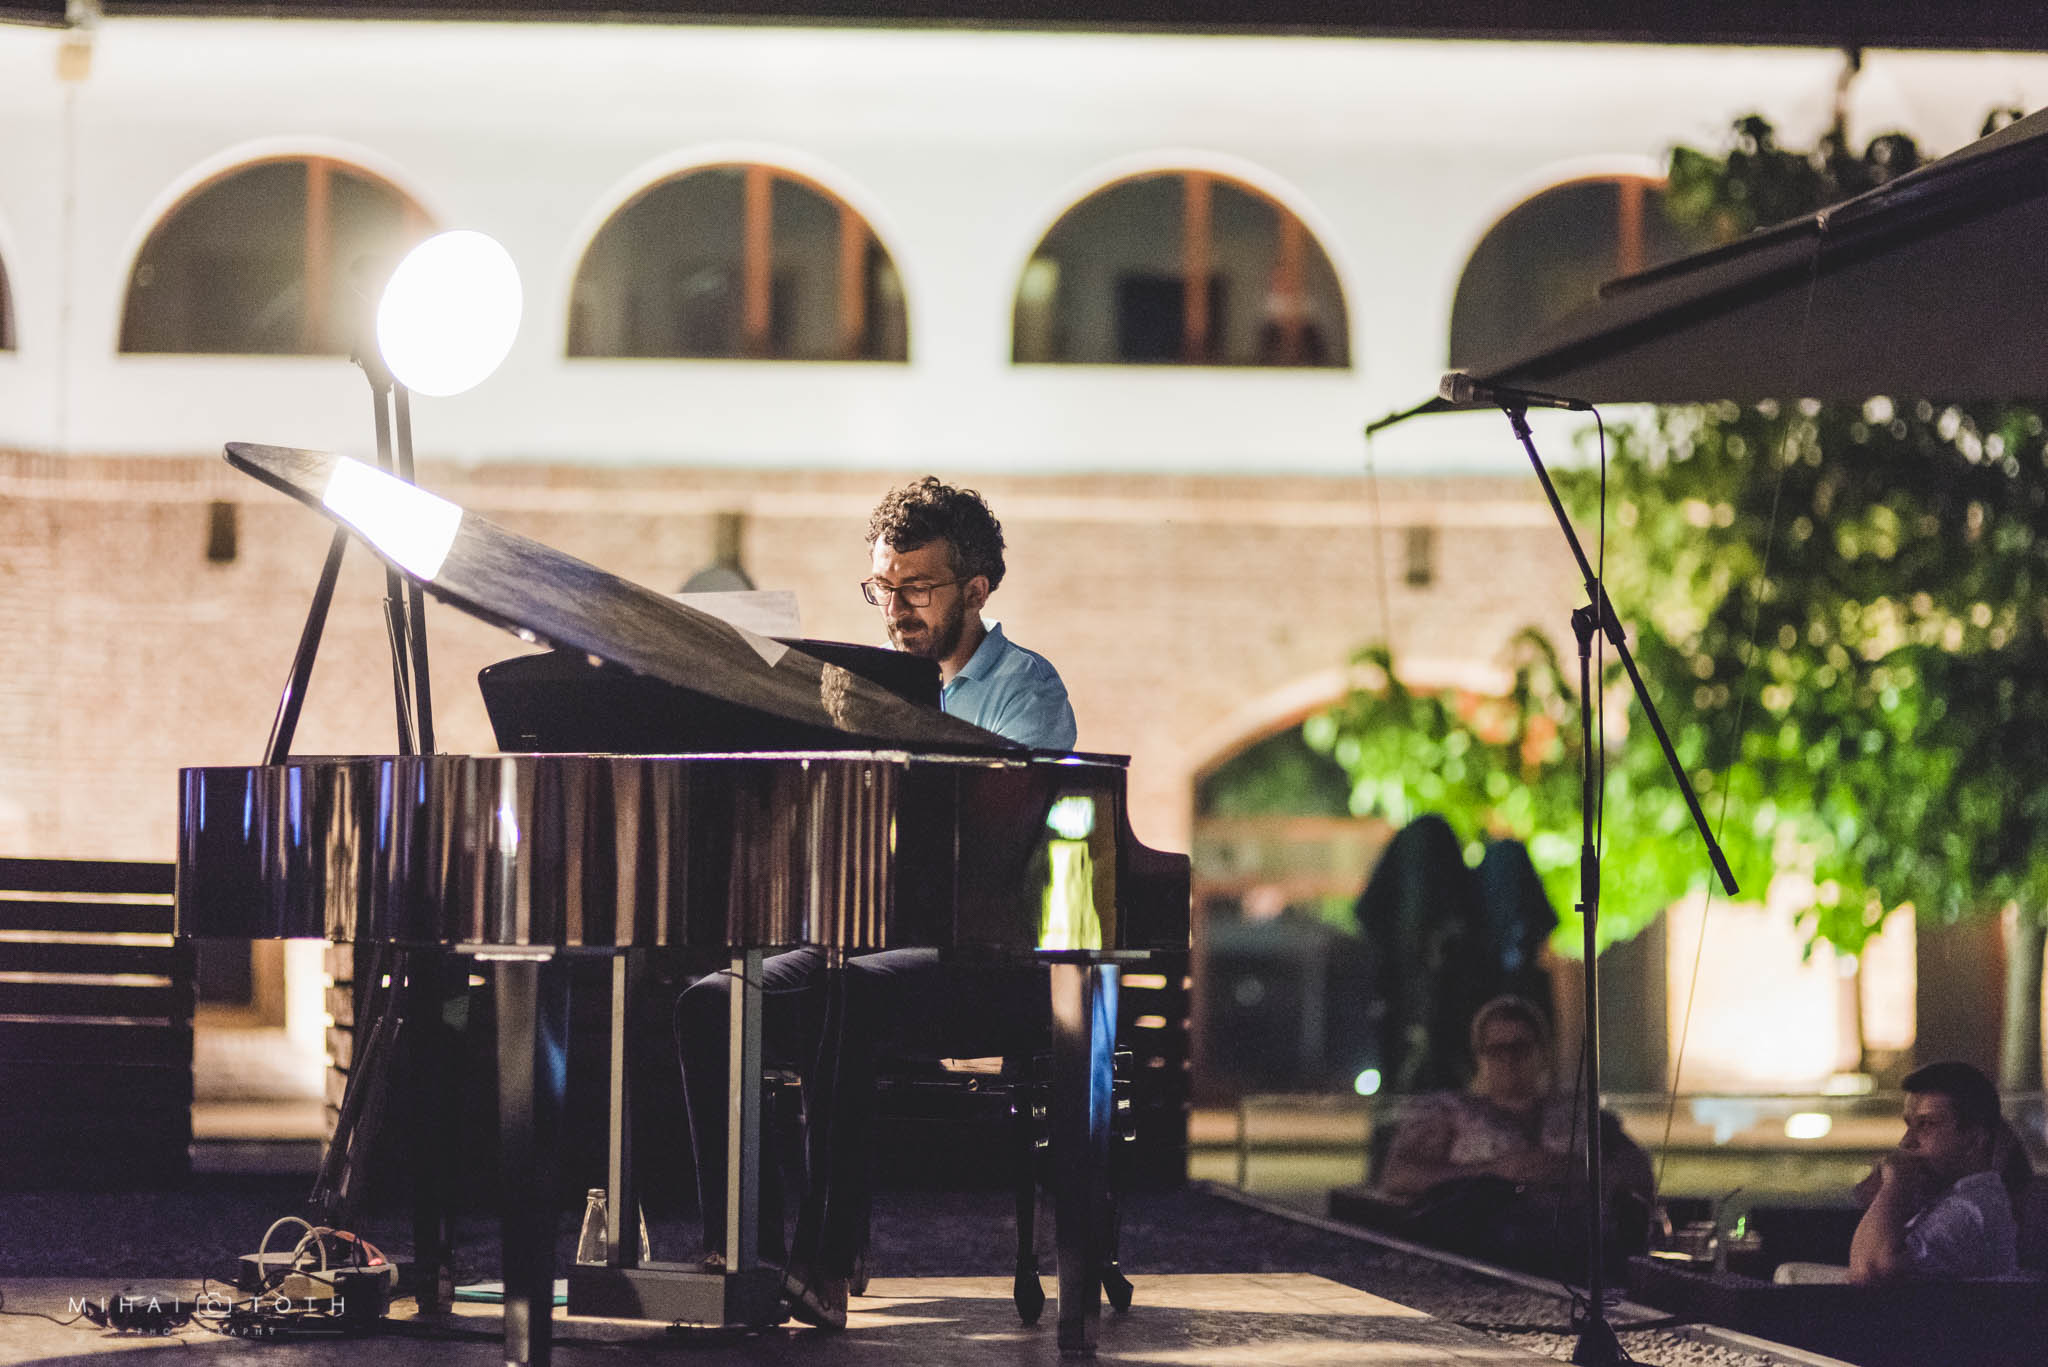 Pianist Teo Milea performing at Timisoara (Romania, 2016)